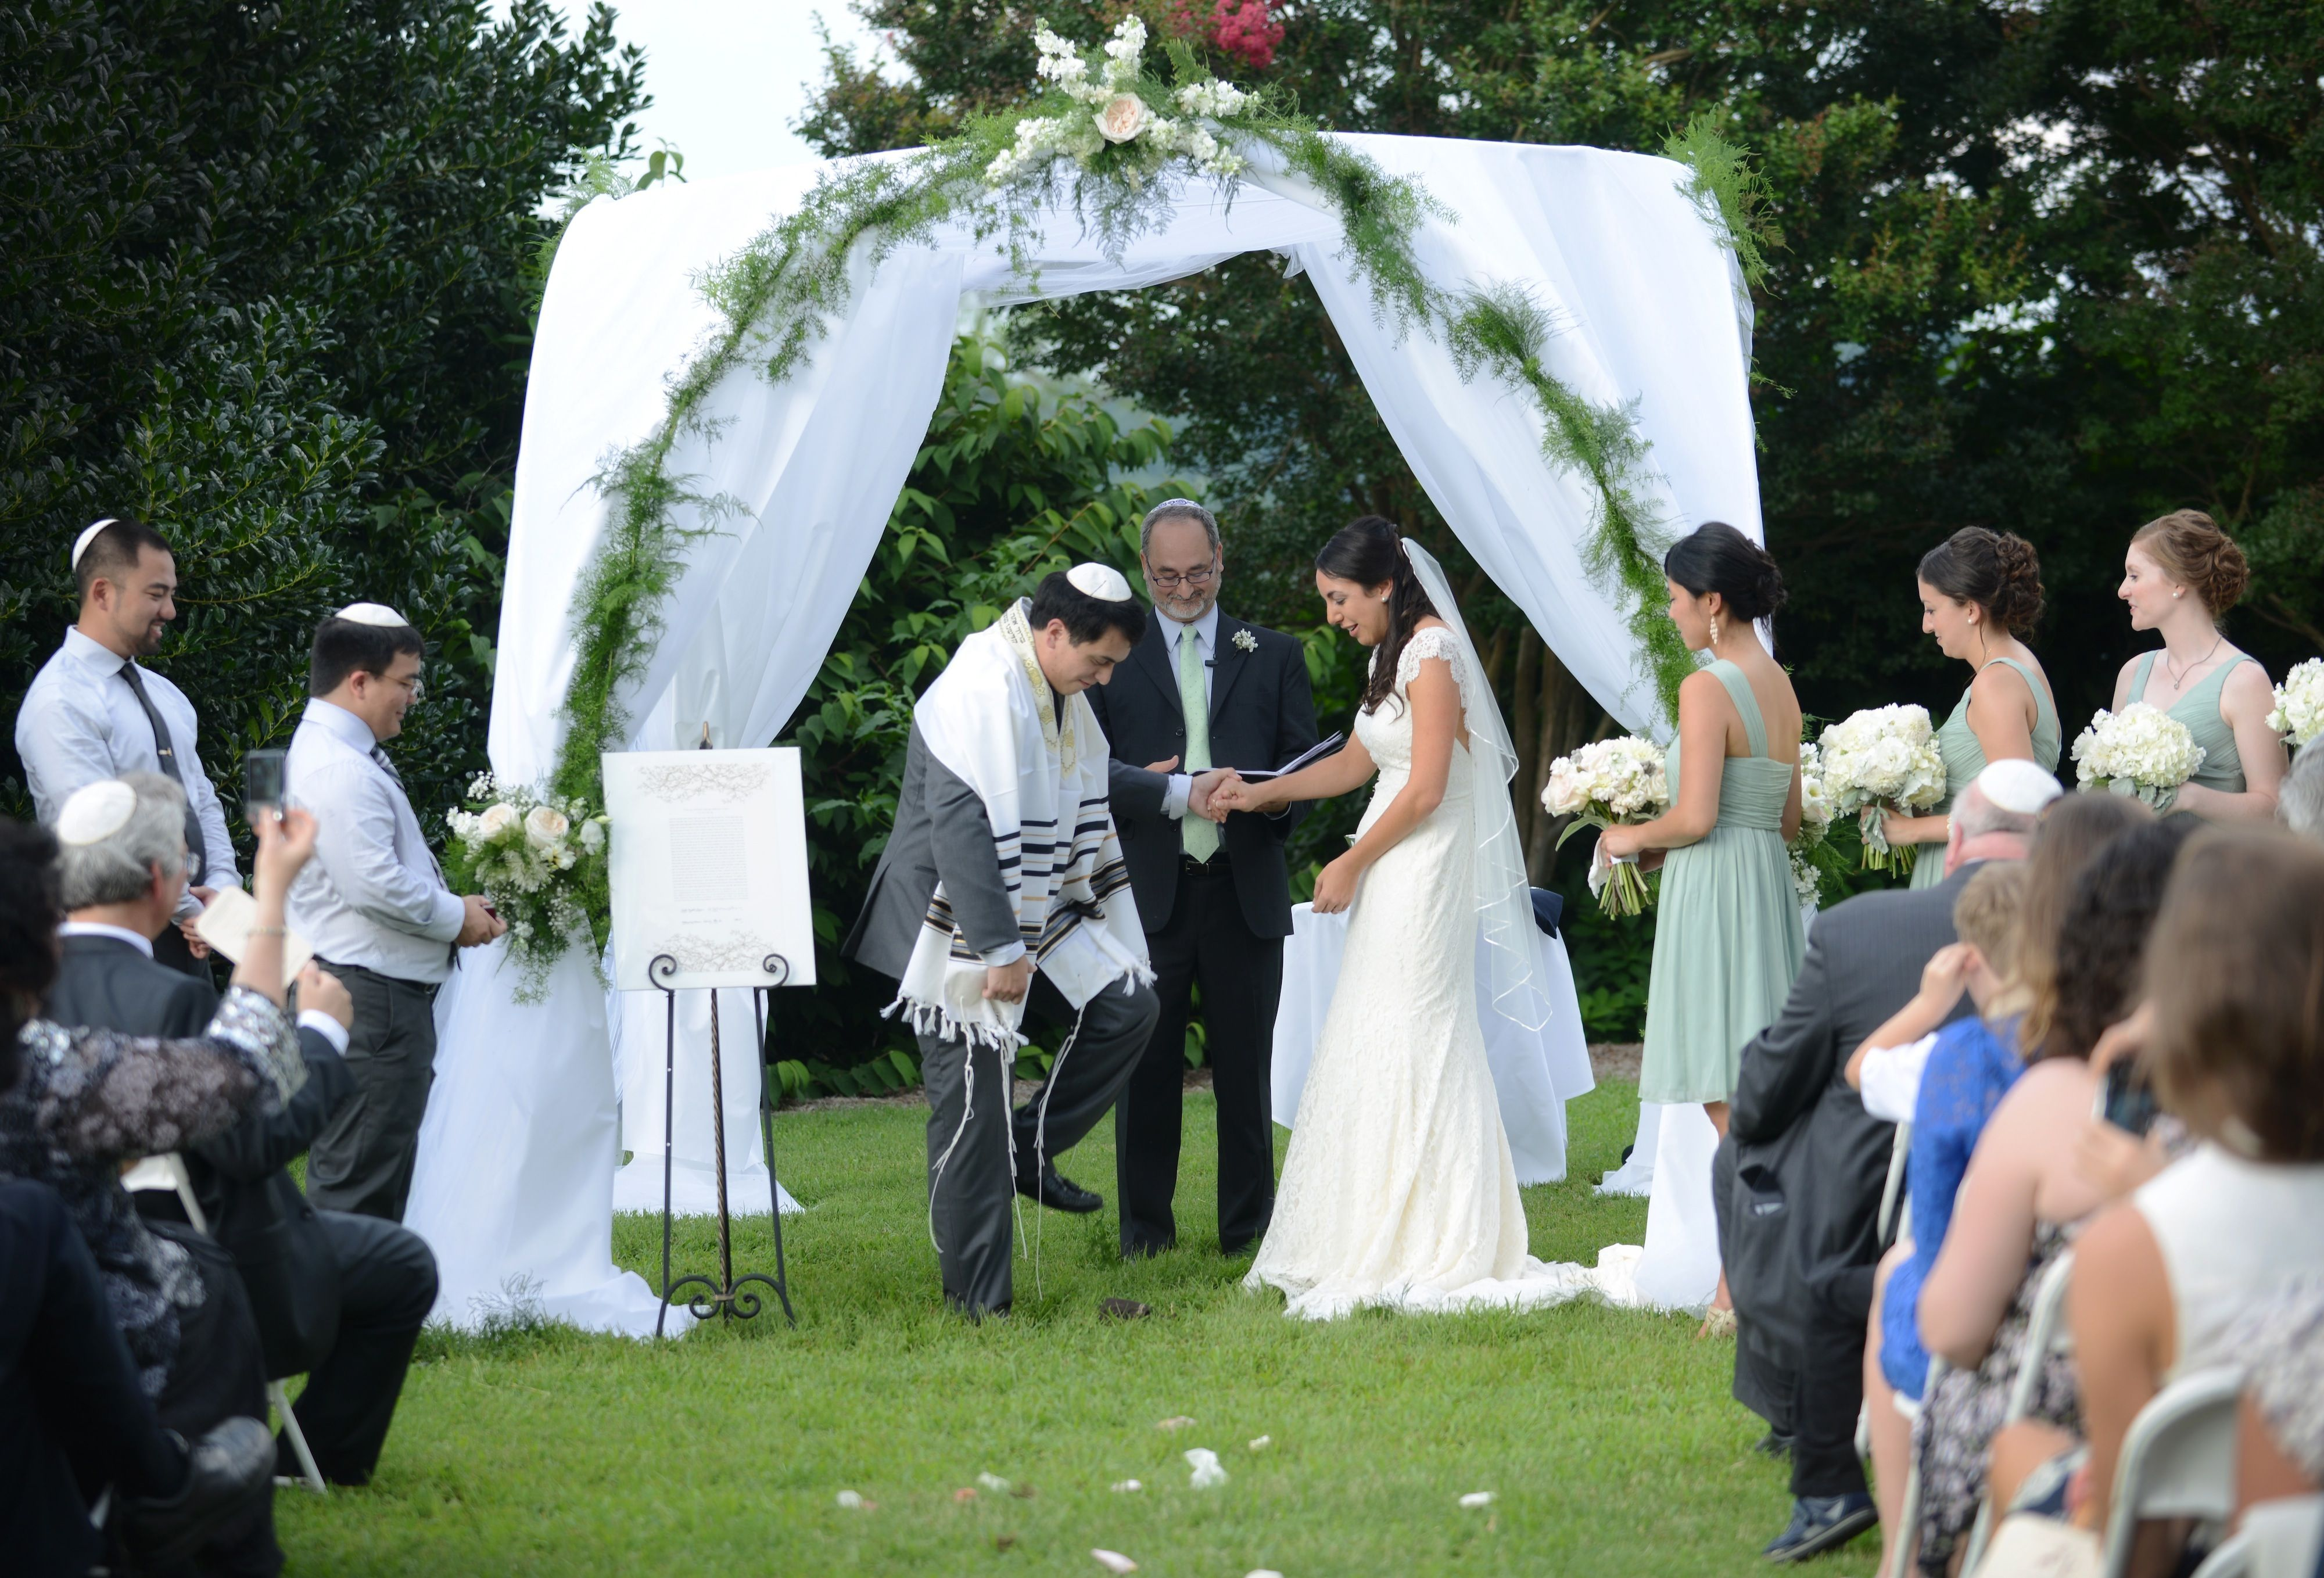 Jewish Wedding Traditions.Jewish Wedding Ceremony Scripts Wedding Stuff Jewish Wedding